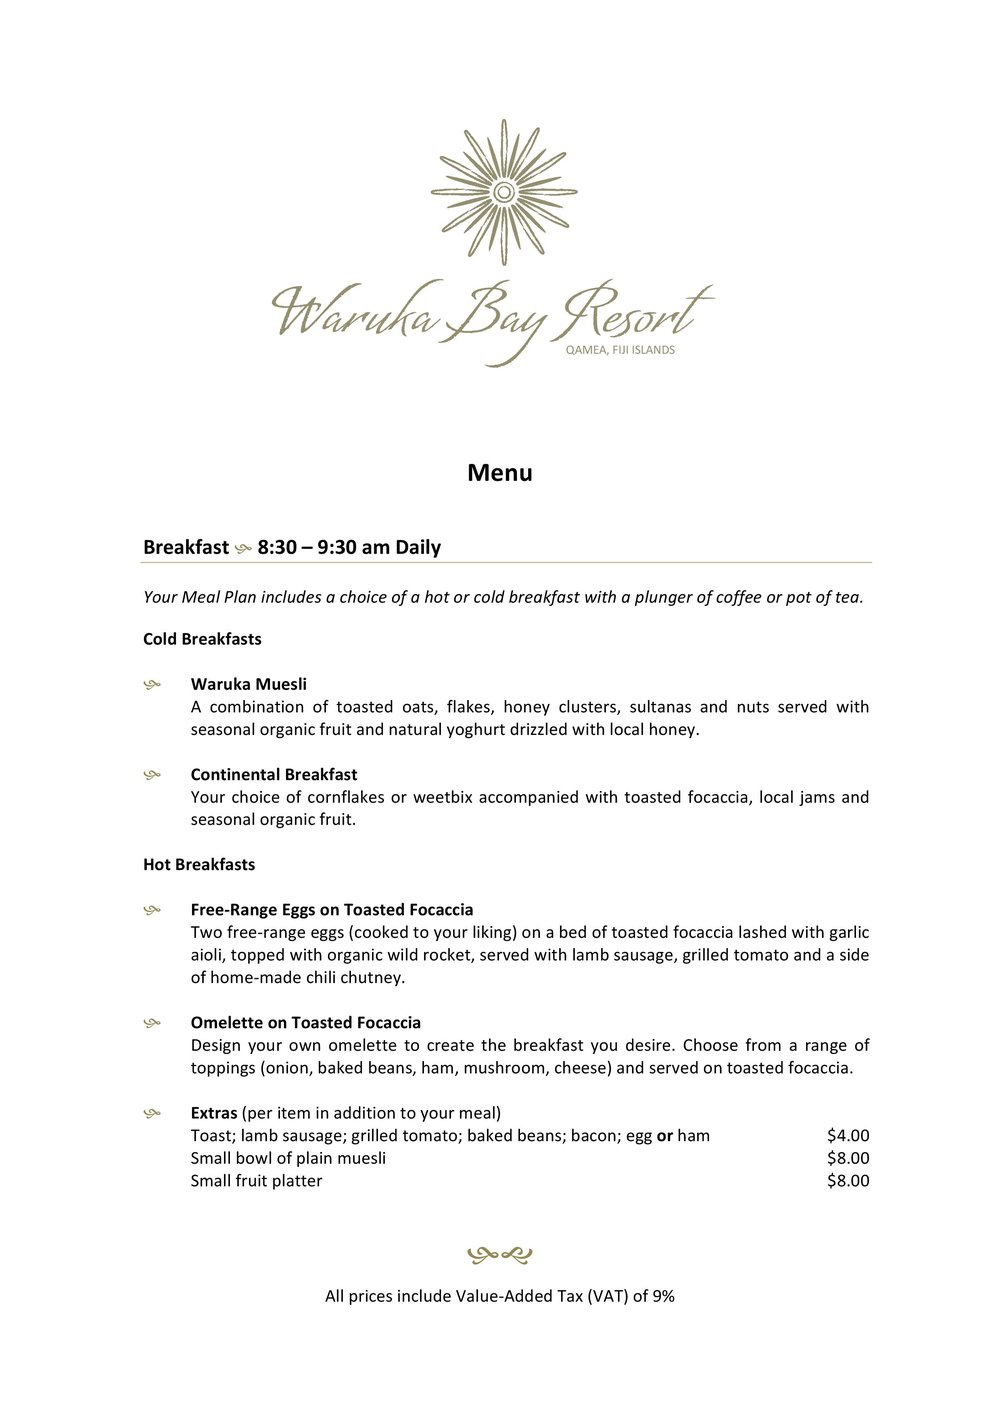 Menu (amended Aug 2018)-page-001.jpg